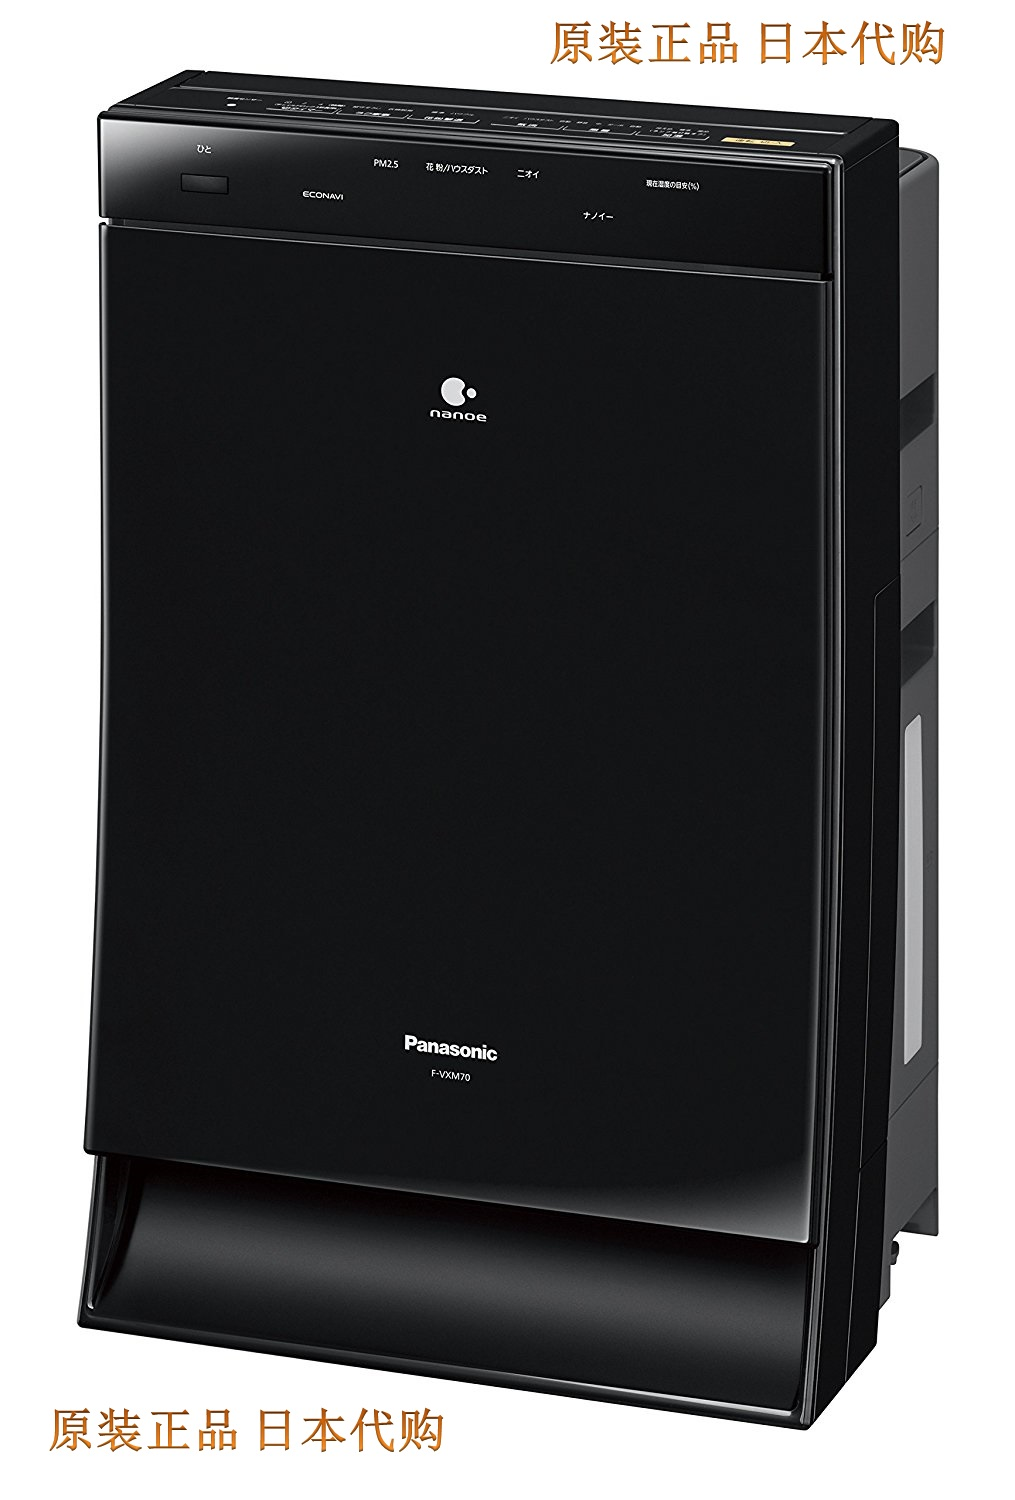 Panasonic/ Panasonic F-VXM70-K air purifier disinfection machine deodorant formaldehyde haze without supplies